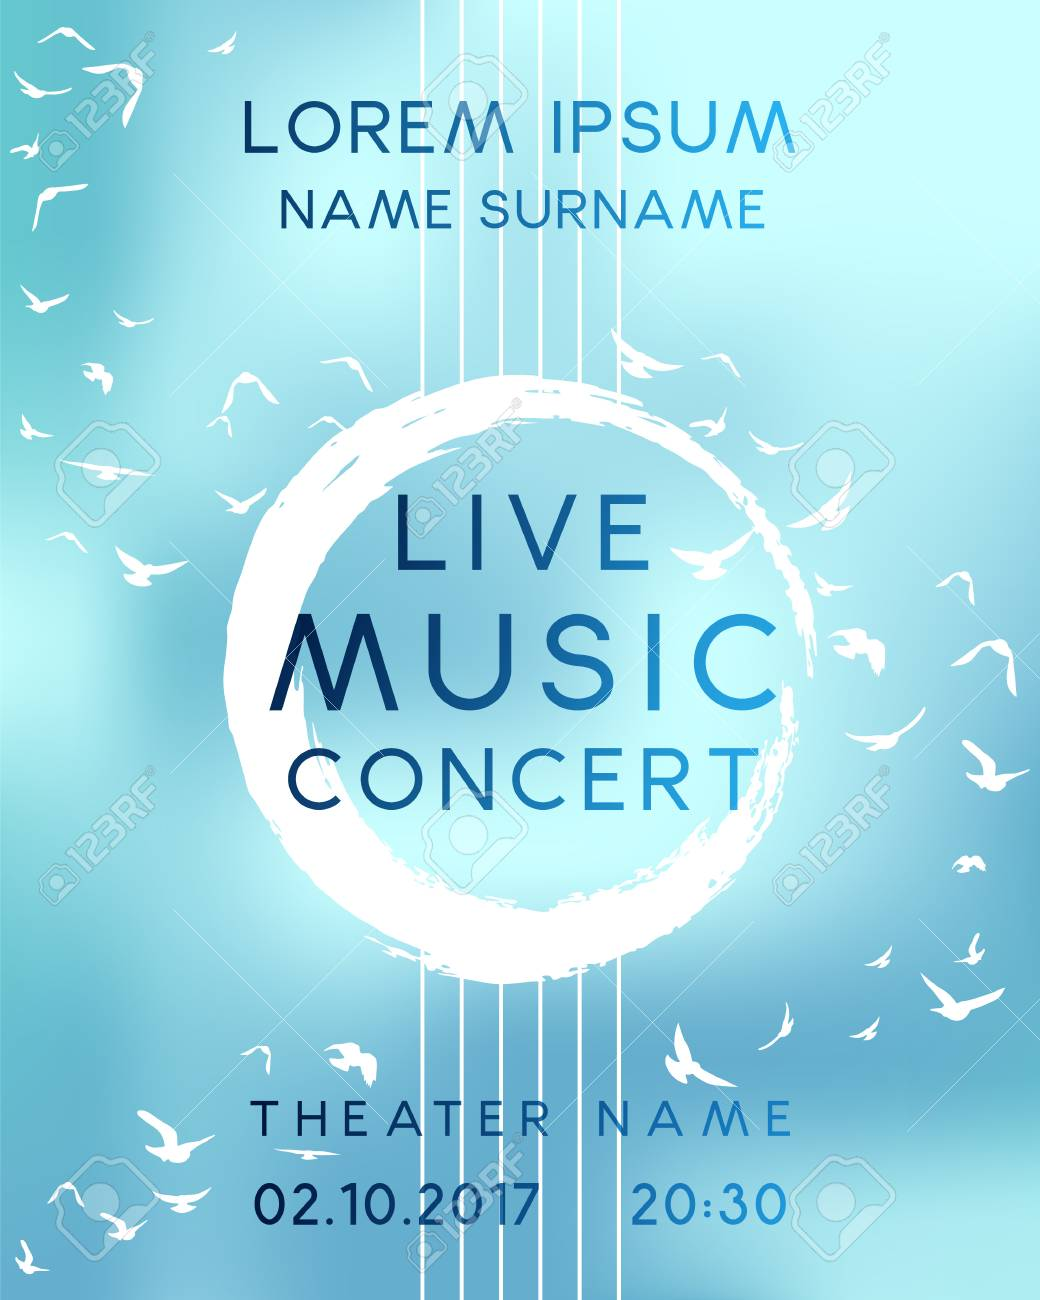 Classical Music Concert Poster Design Vector Template For Flyer Banner Invitation Stock